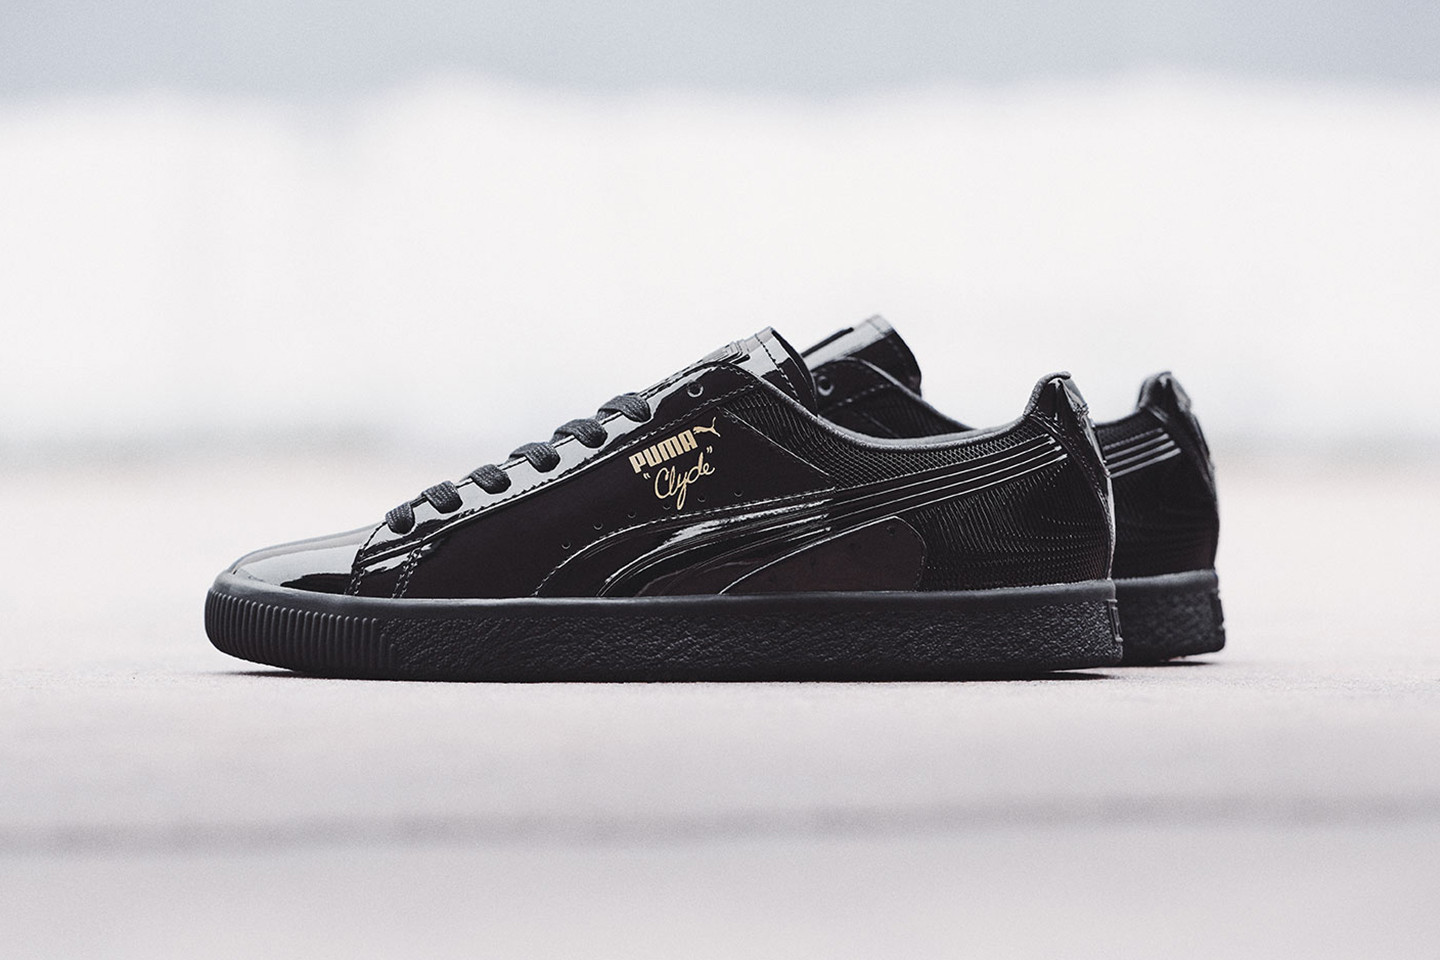 PUMA Clyde Wraith sneaker shoe lowtop patent leather e5a72b5ad